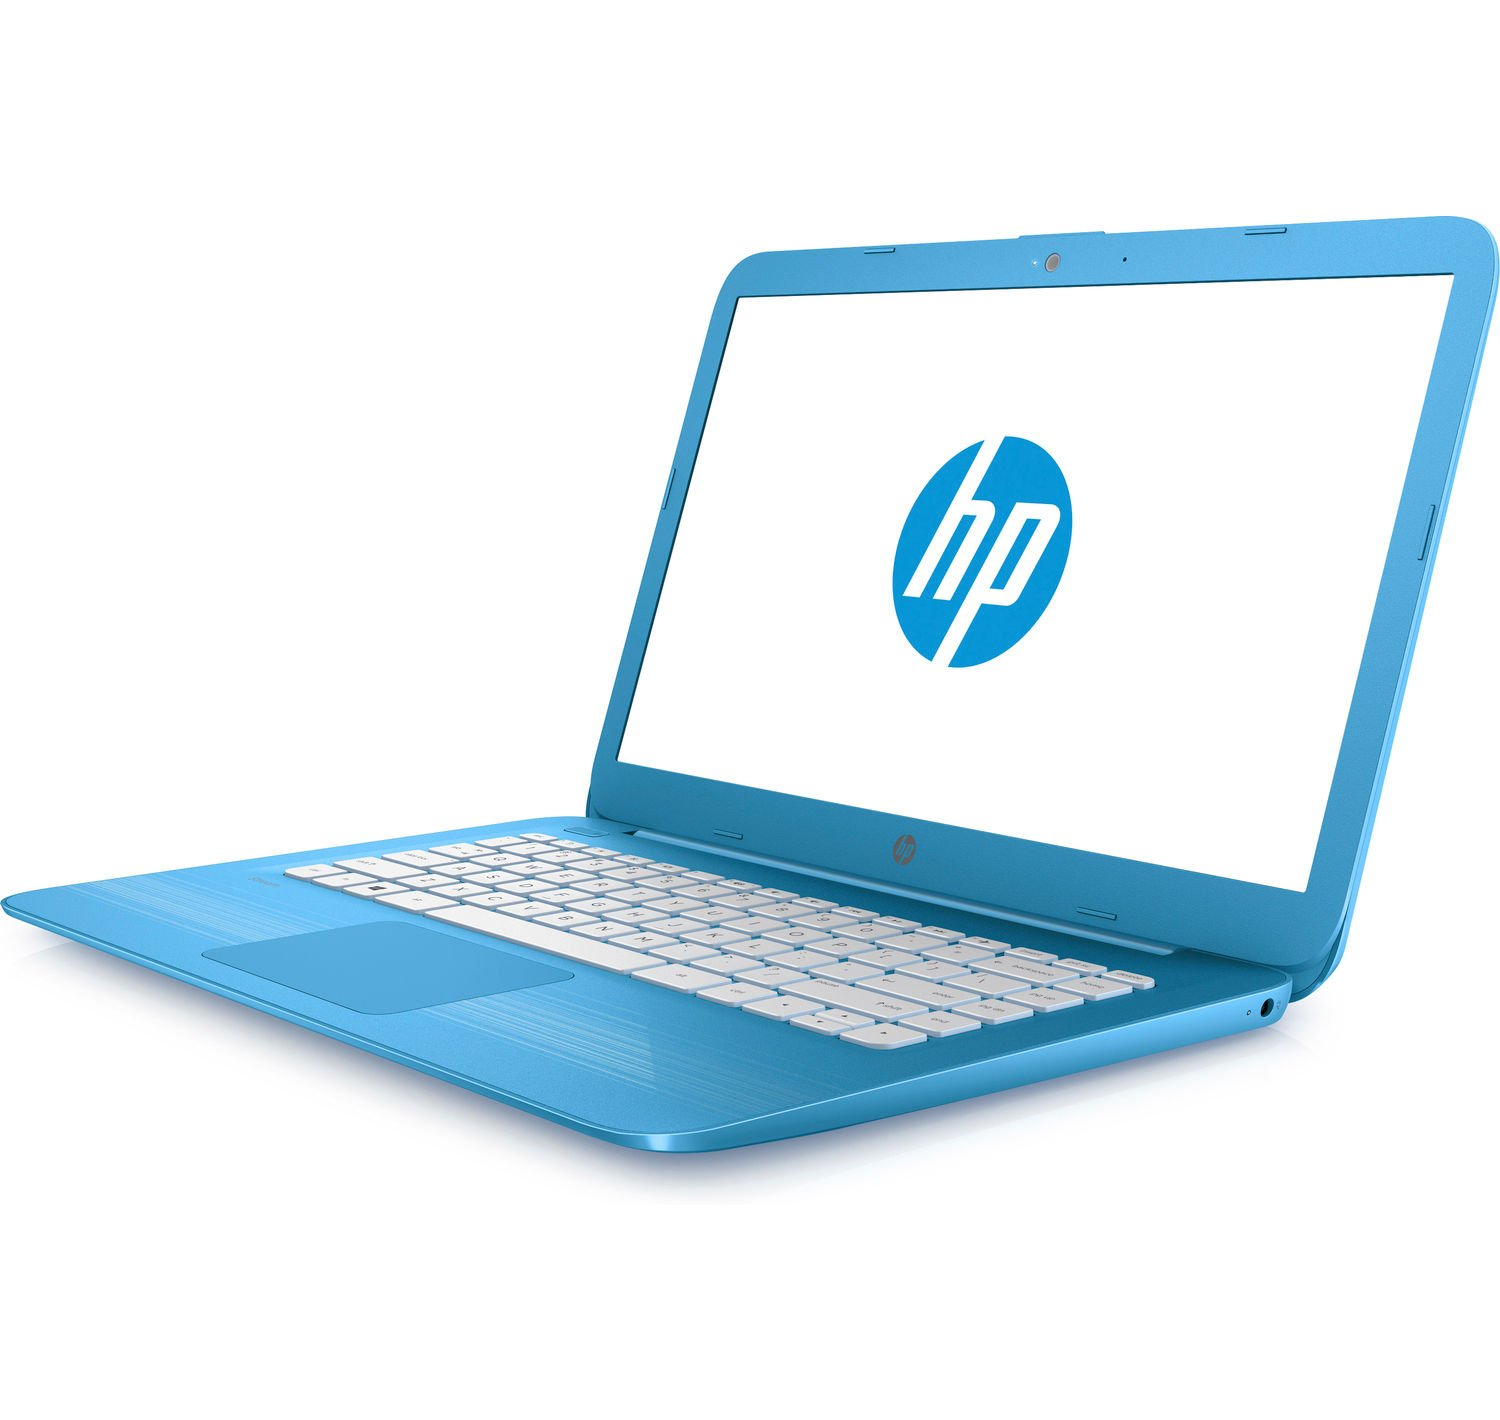 Amazon HP Stream 14 Laptop Intel Celeron N3060 4GB RAM 32GB Solid State Drive With Windows 10 Ax010ca